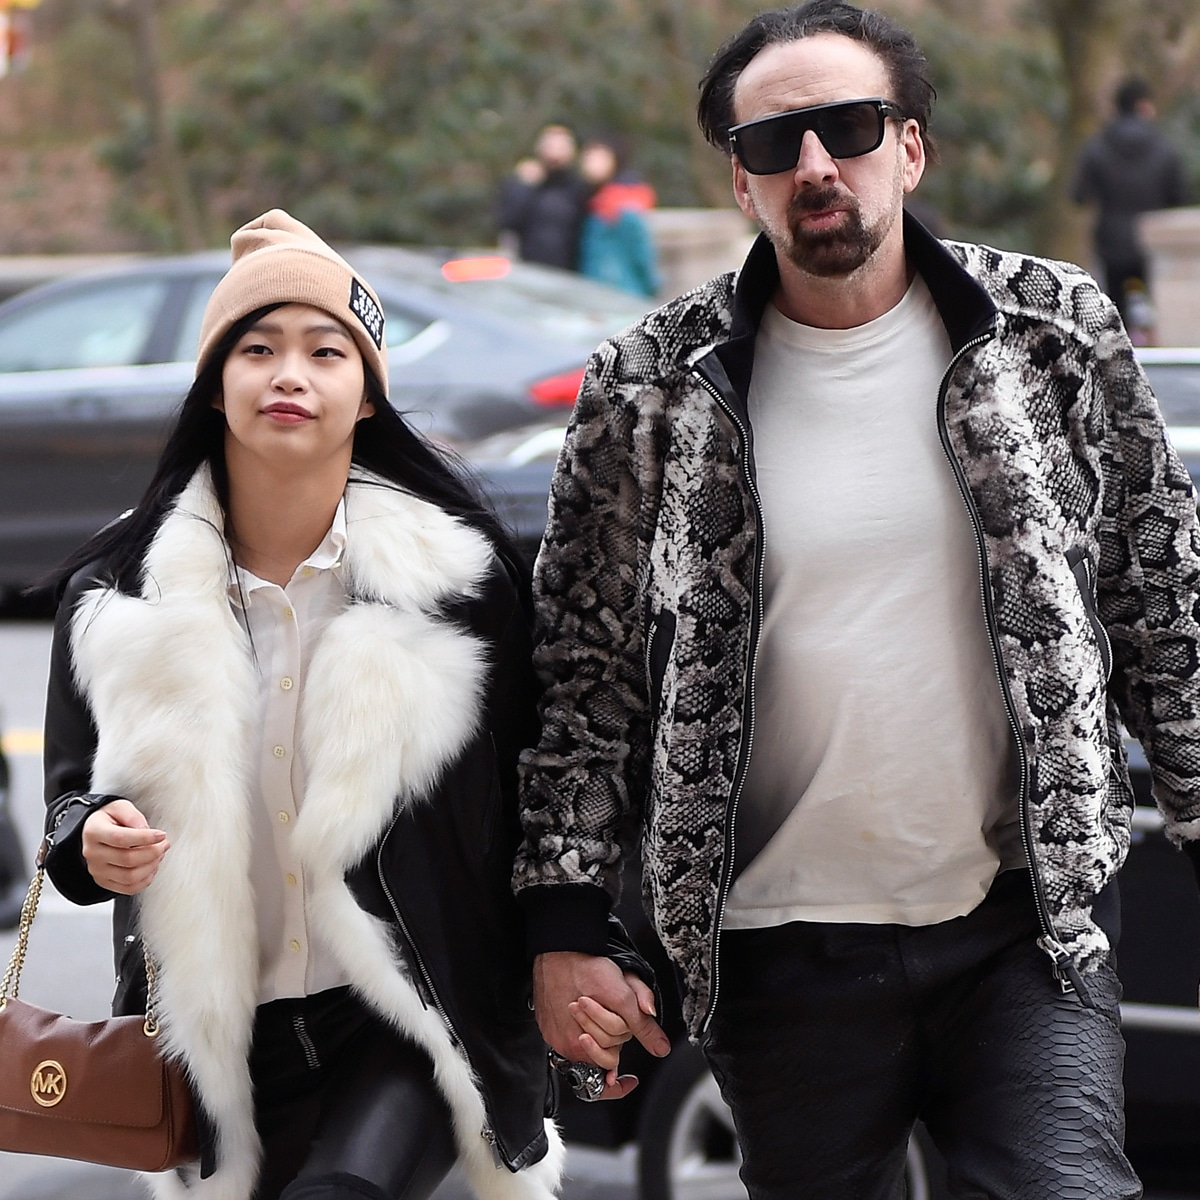 Nicolas Cage Gets Married for the Fifth Time - E! Online